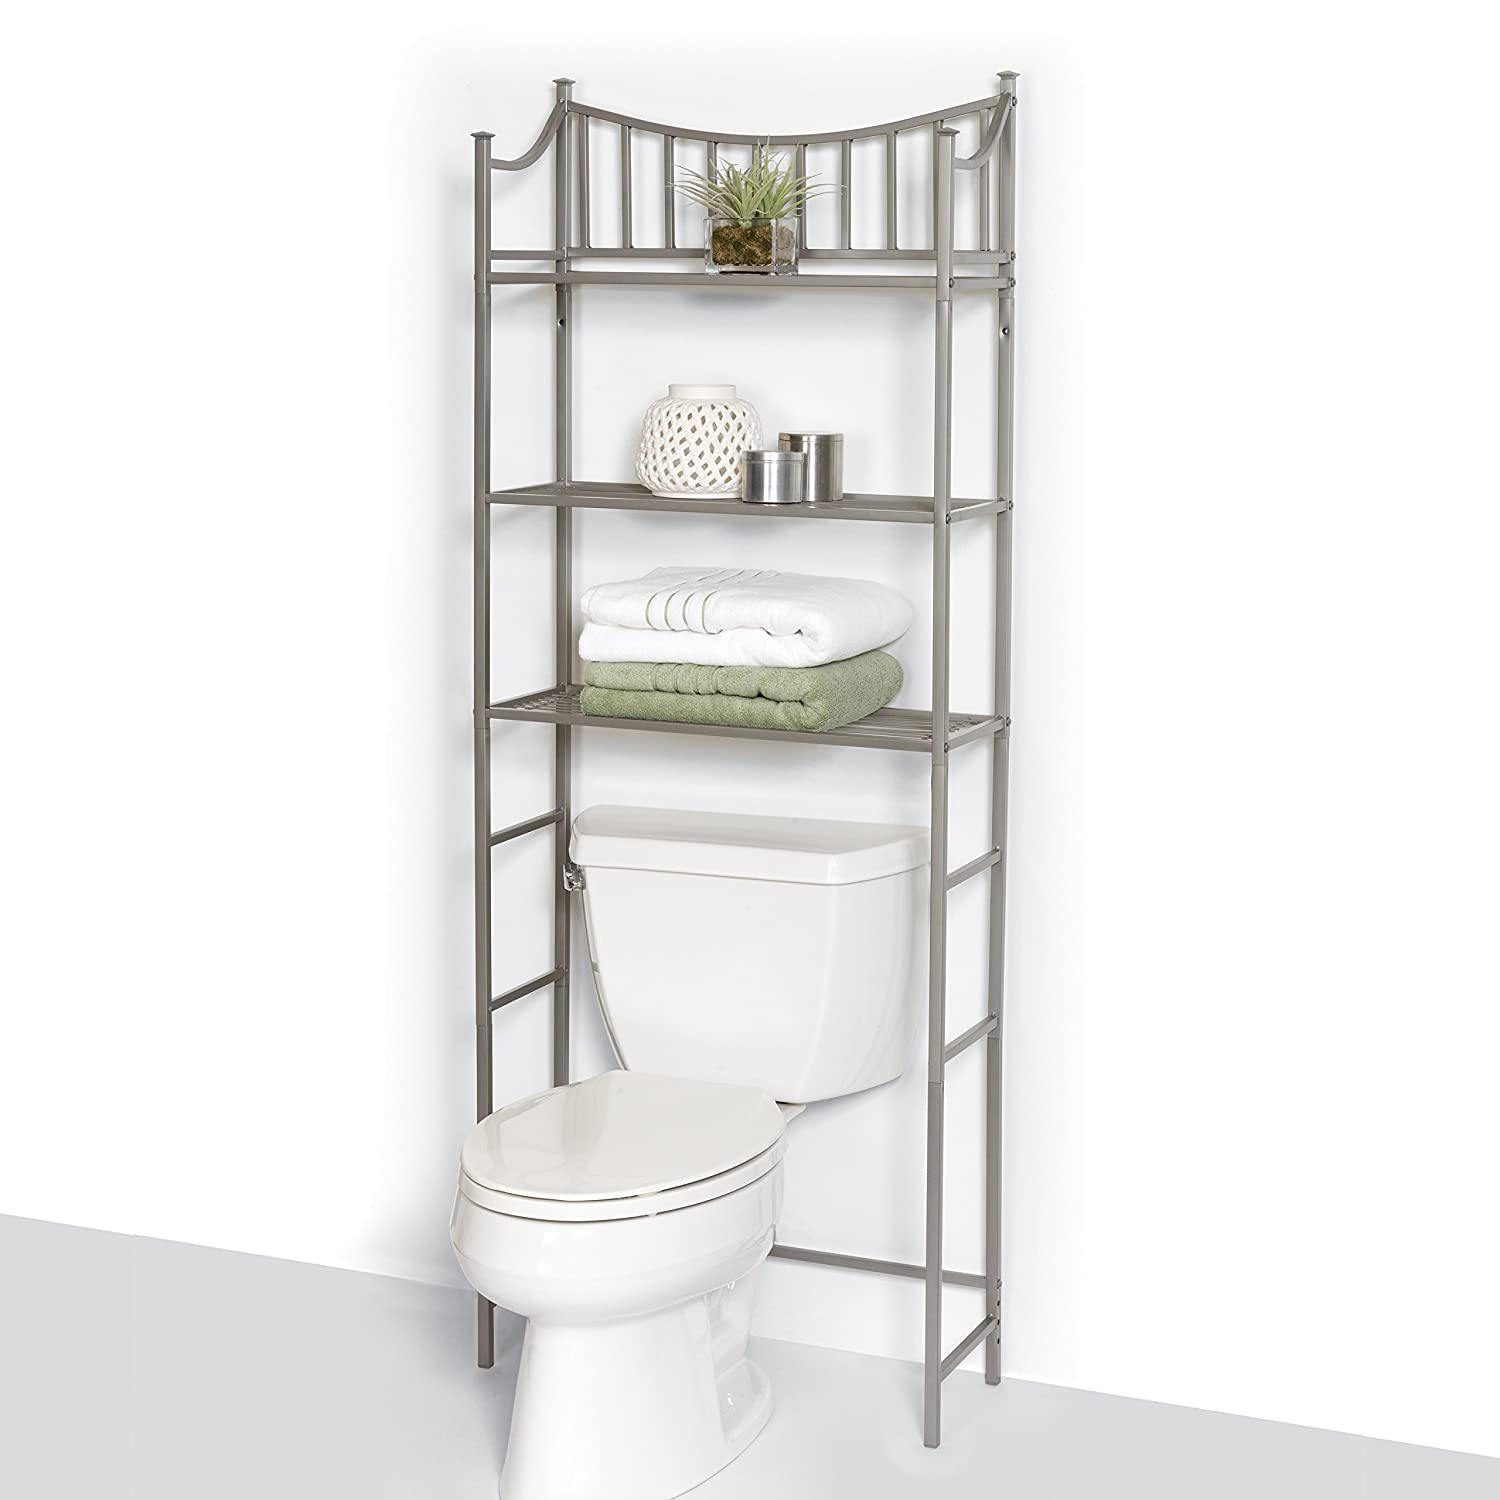 Zenna home 9065nn bathroom spacesaver satin nickel new for Chapter bathroom space saver white assembly instructions